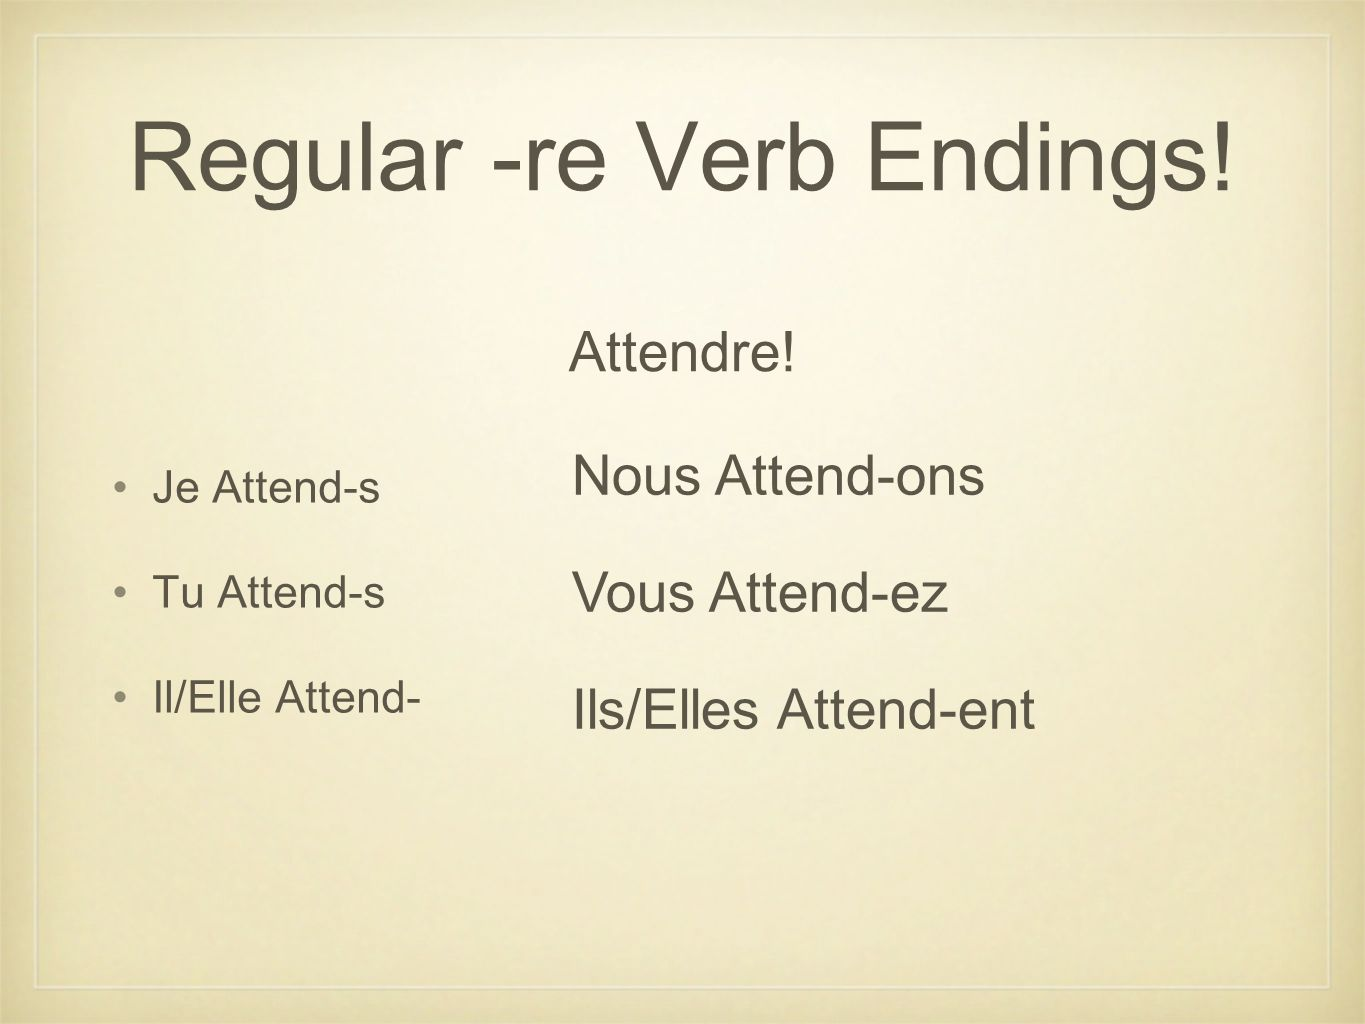 Regular -re Verb Endings!